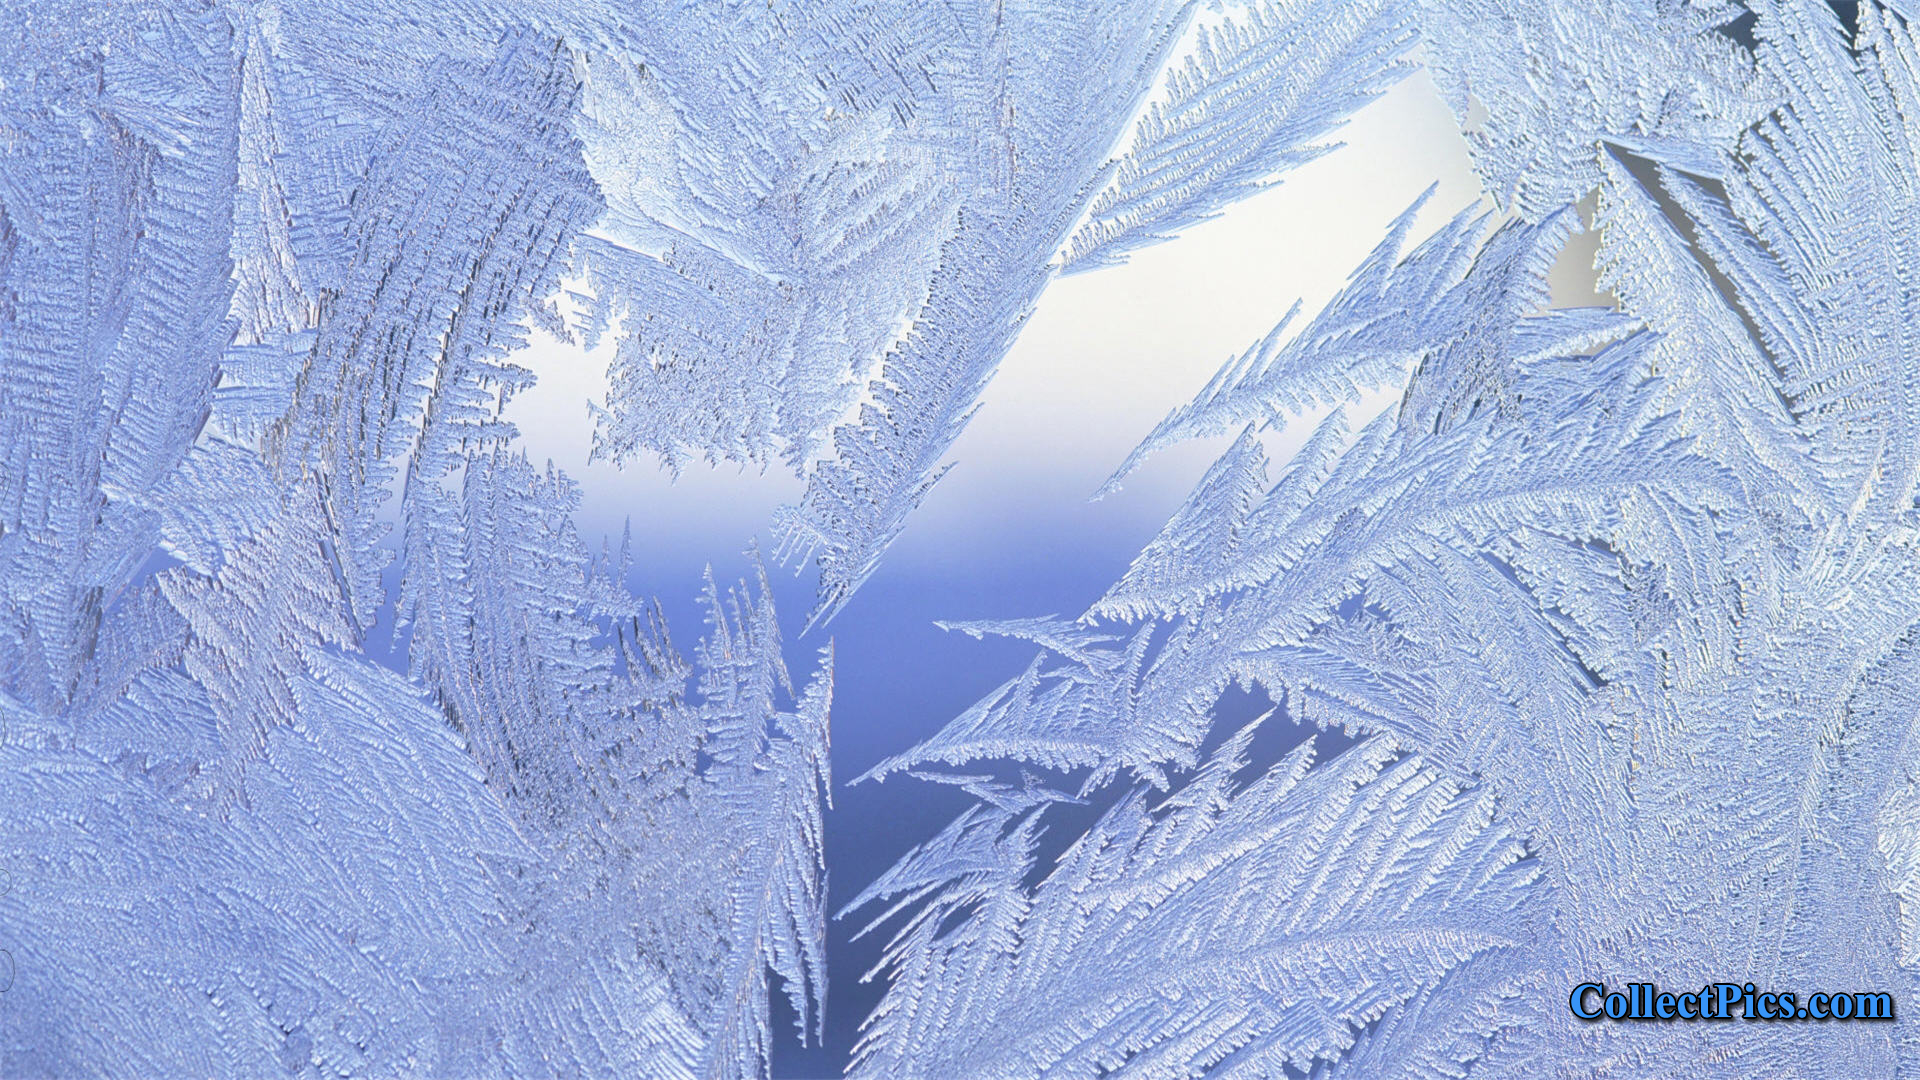 Winter Desktop Backgrounds Related Keywords amp Suggestions 1920x1080